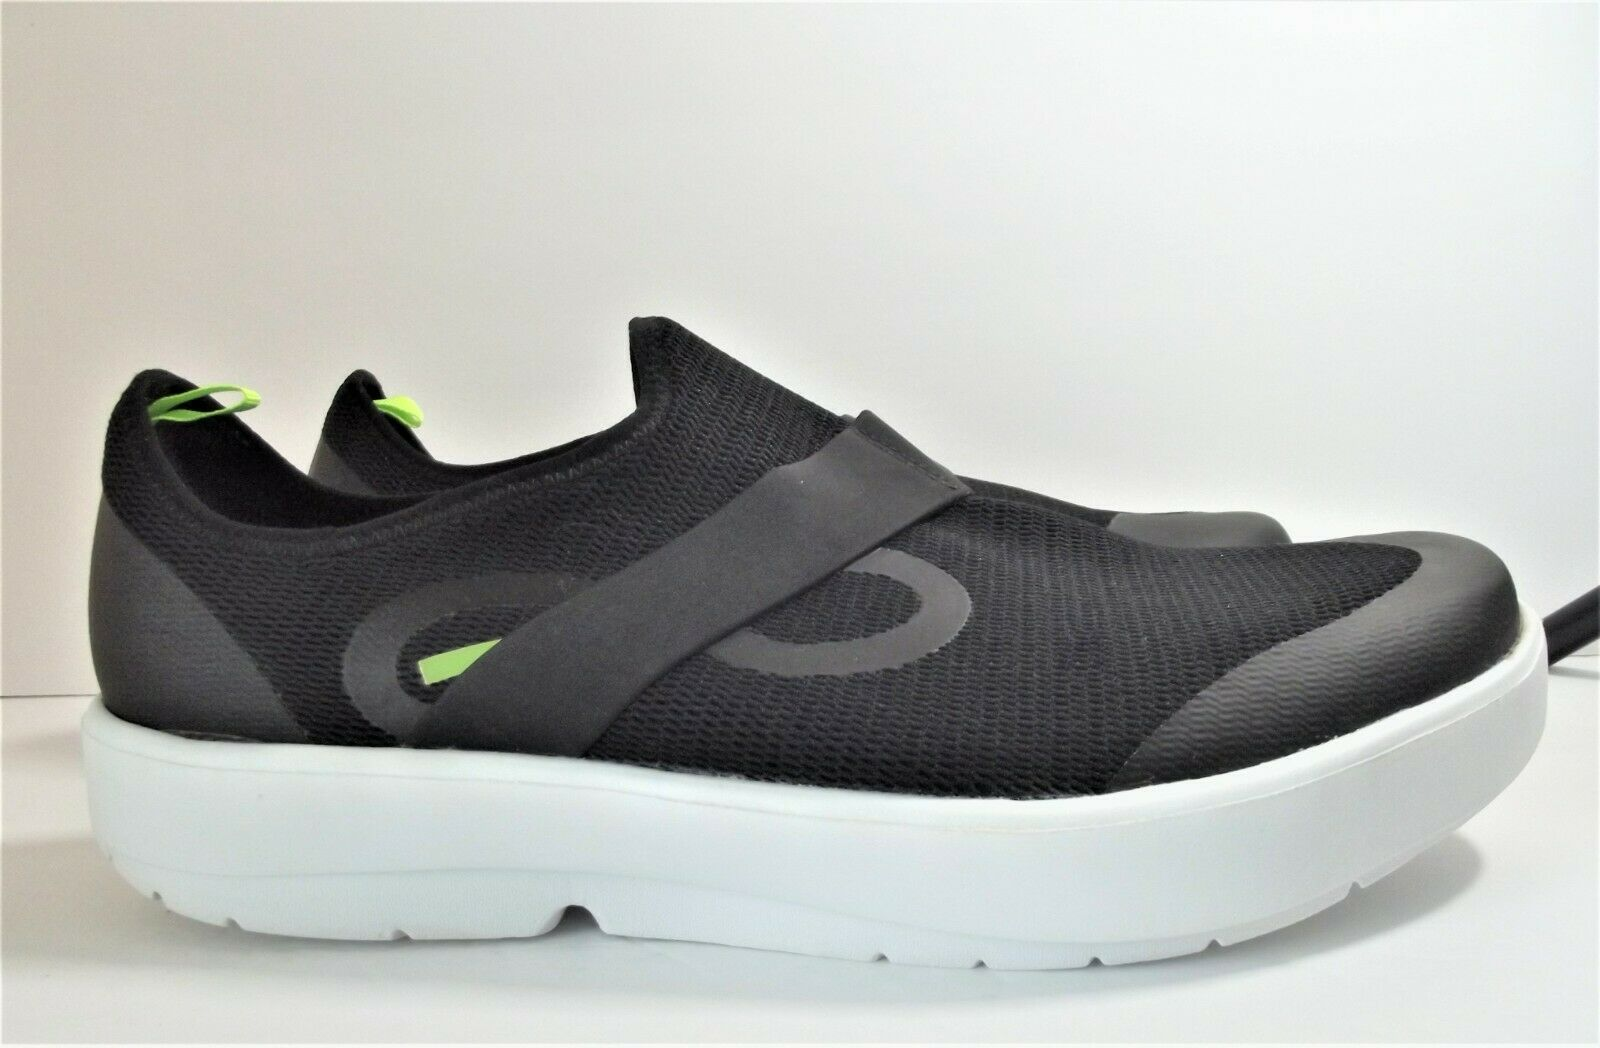 Recovery OOFOS Men's OOMG Low shoe black and white size 14 on eBay thumbnail